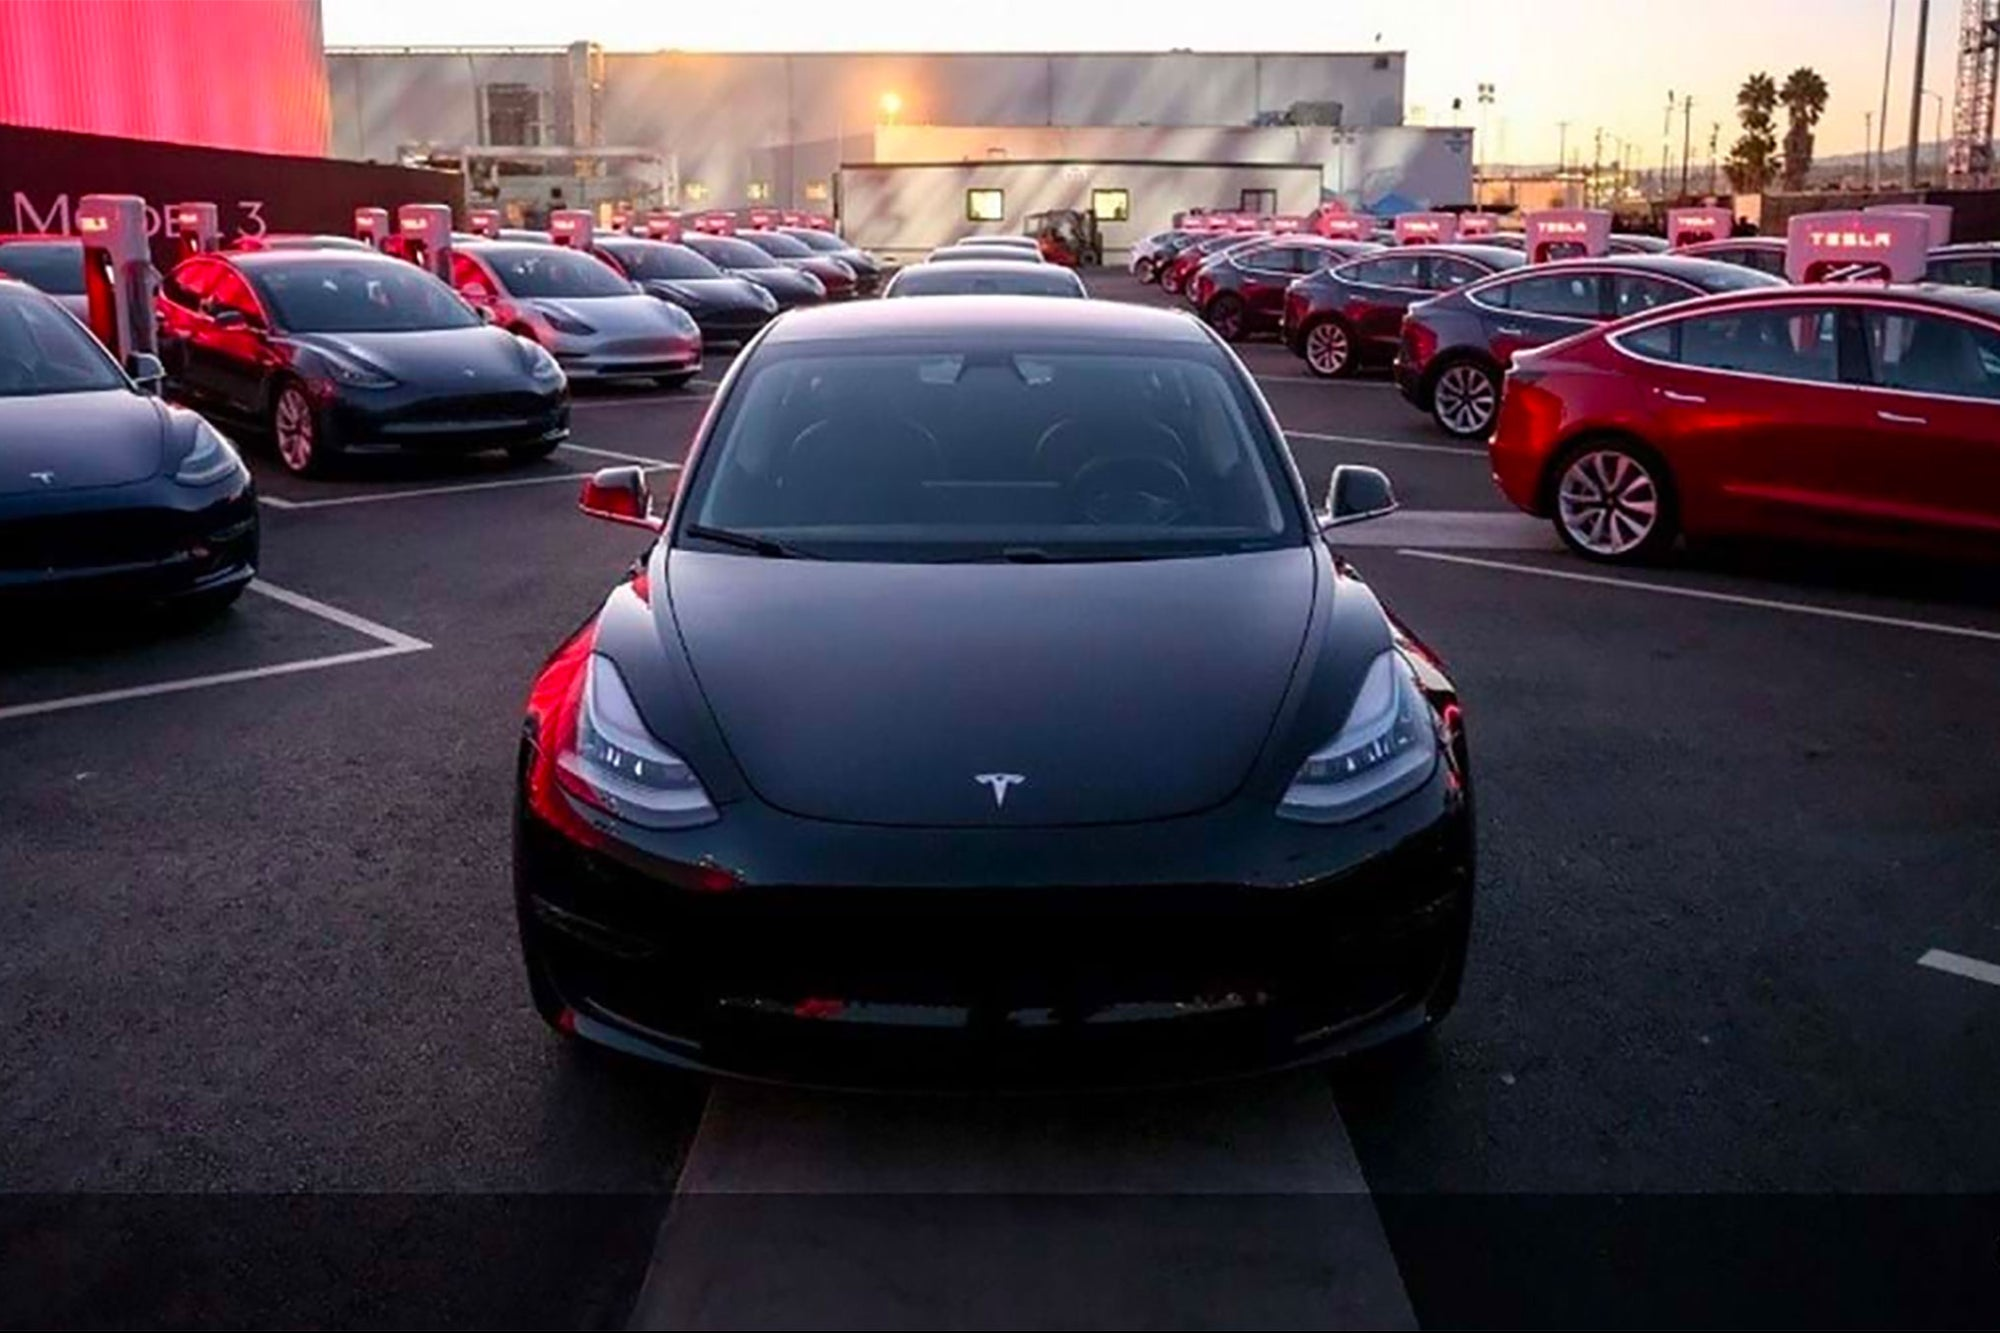 Elon Musk Schedules Tesla 'Battery Day' for Sept. 15